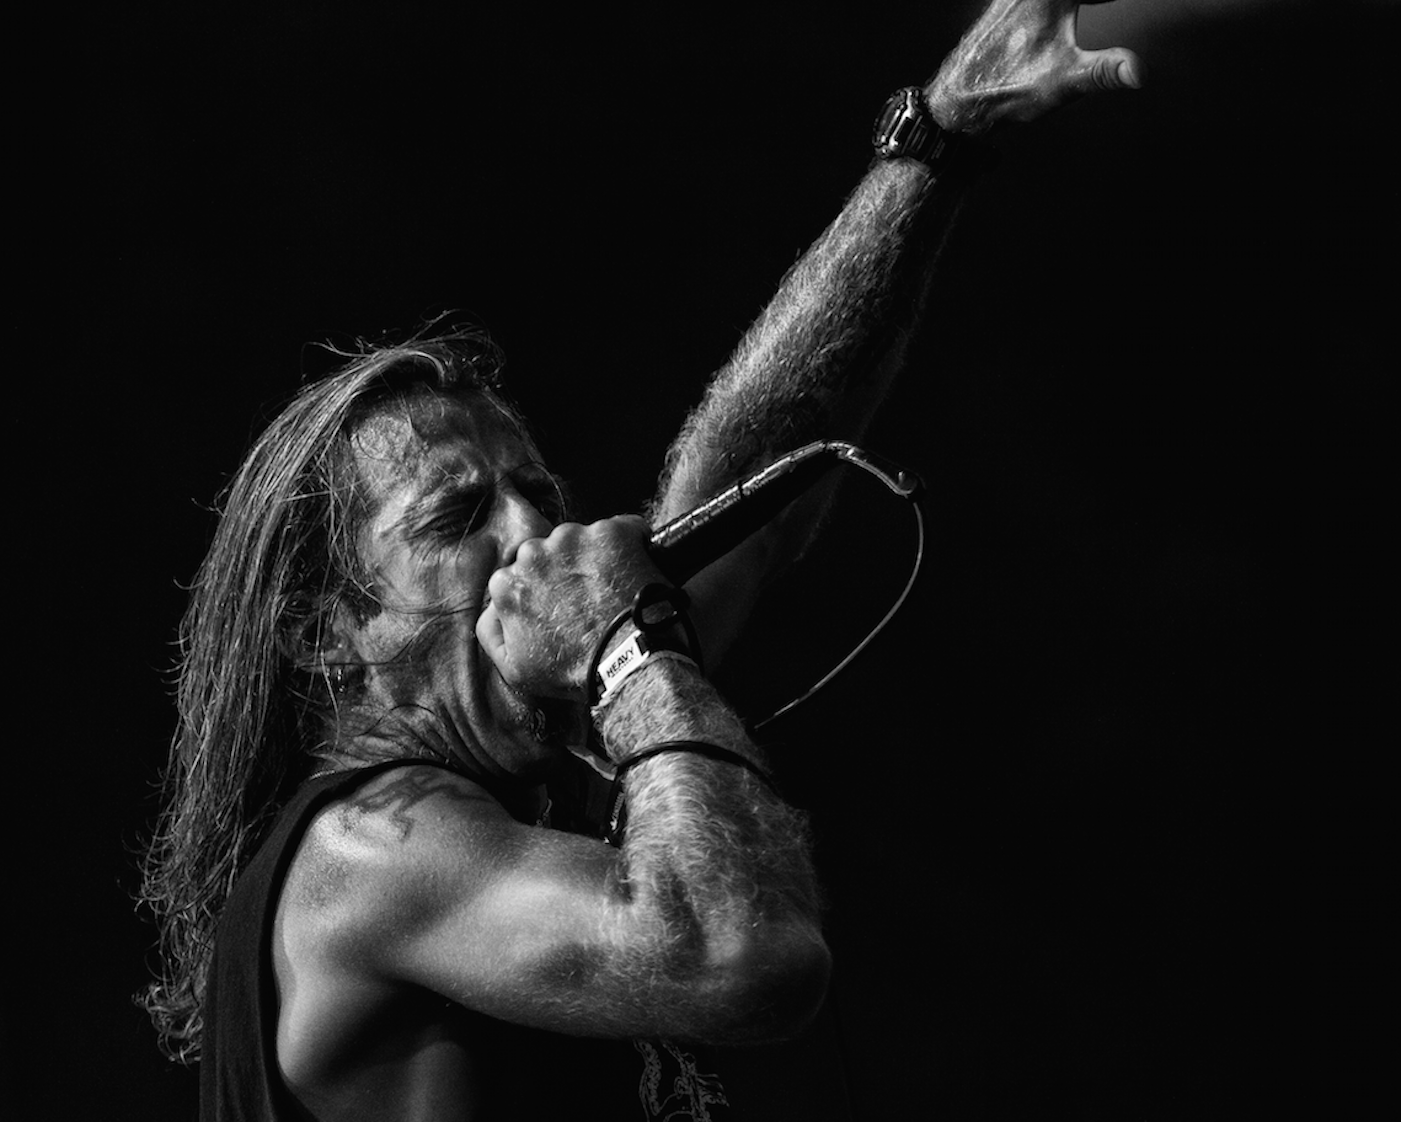 Lamb of God Singer Reveals What He Remembers of Deadly 2010 Czech Show